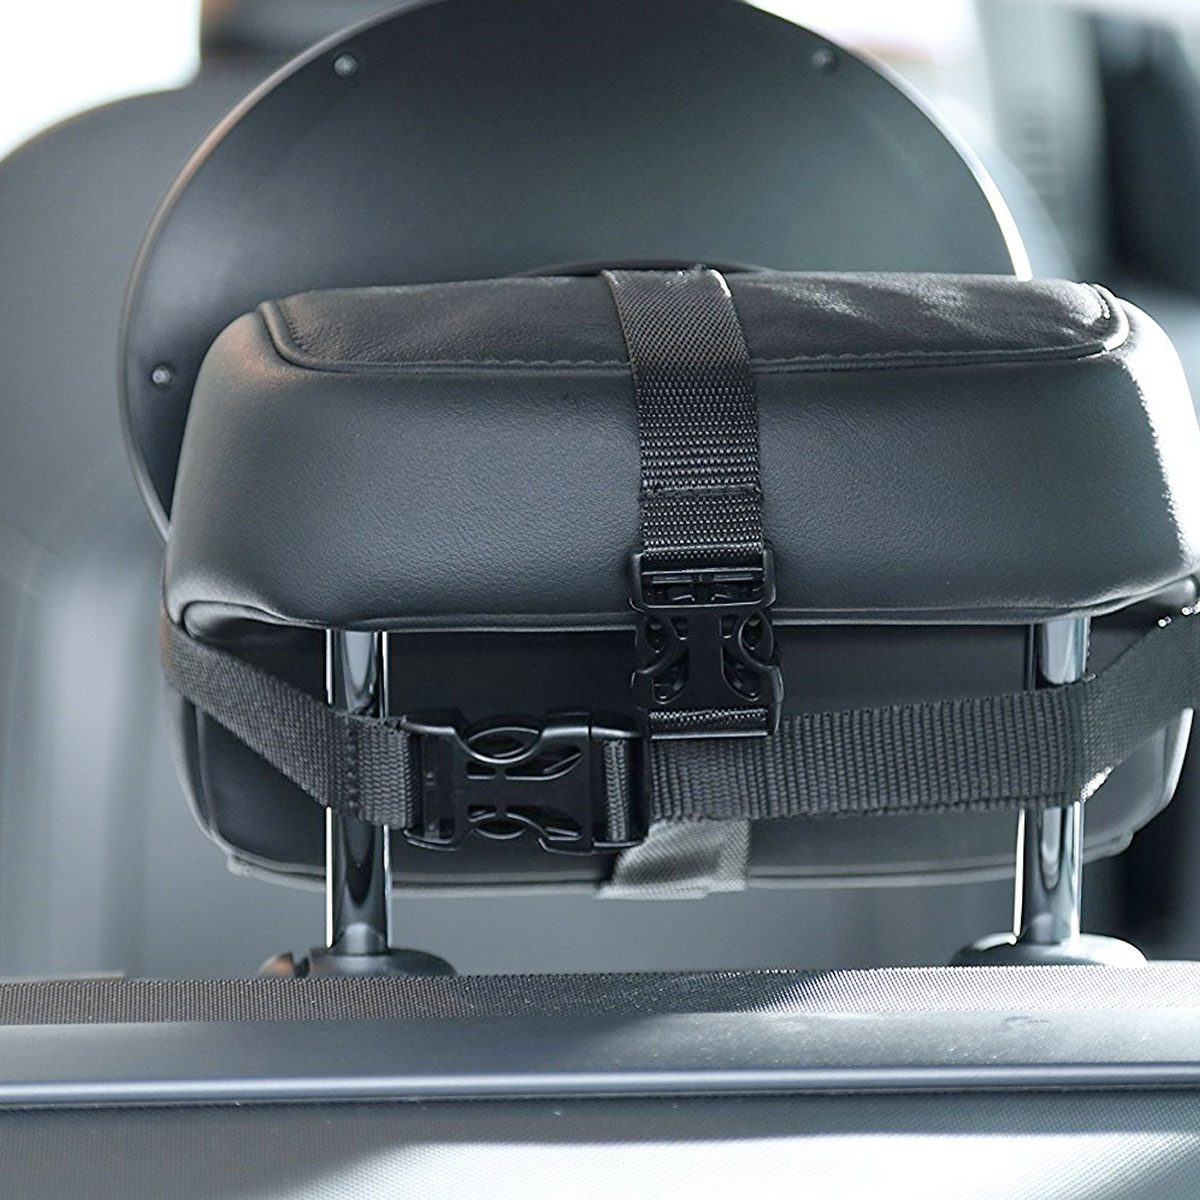 Simply mount the car mirror to the rear headrest